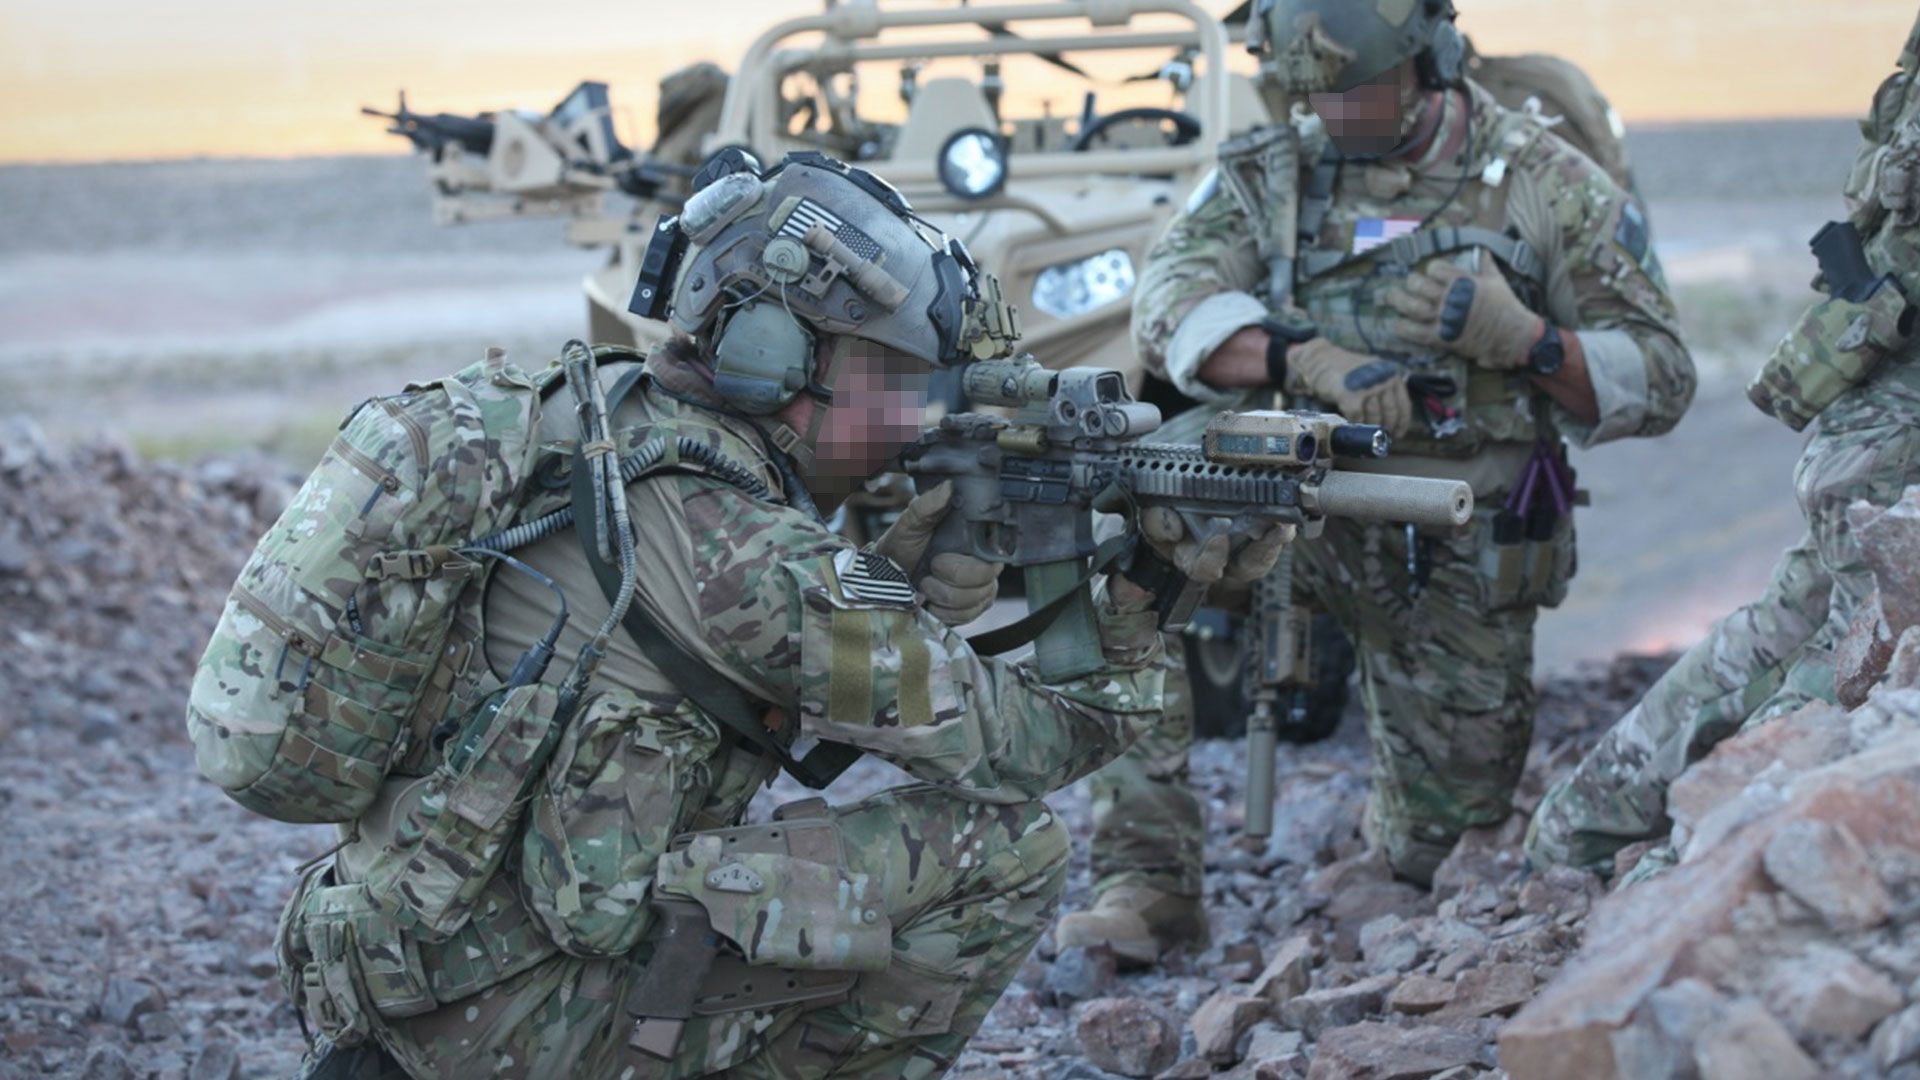 soldiers in crye multicam